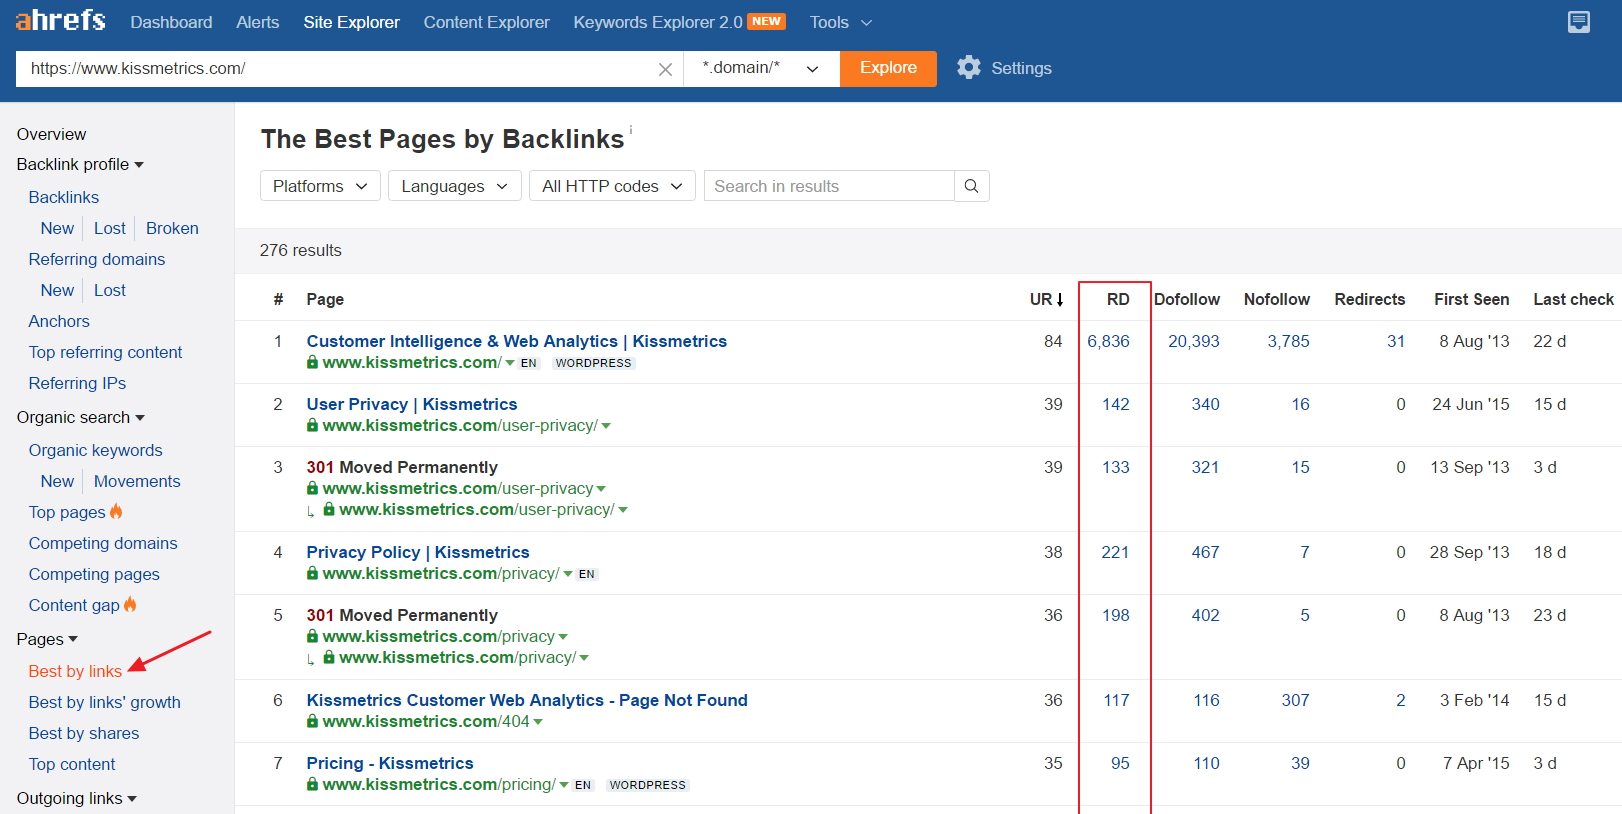 KISSmetrics top linked pages